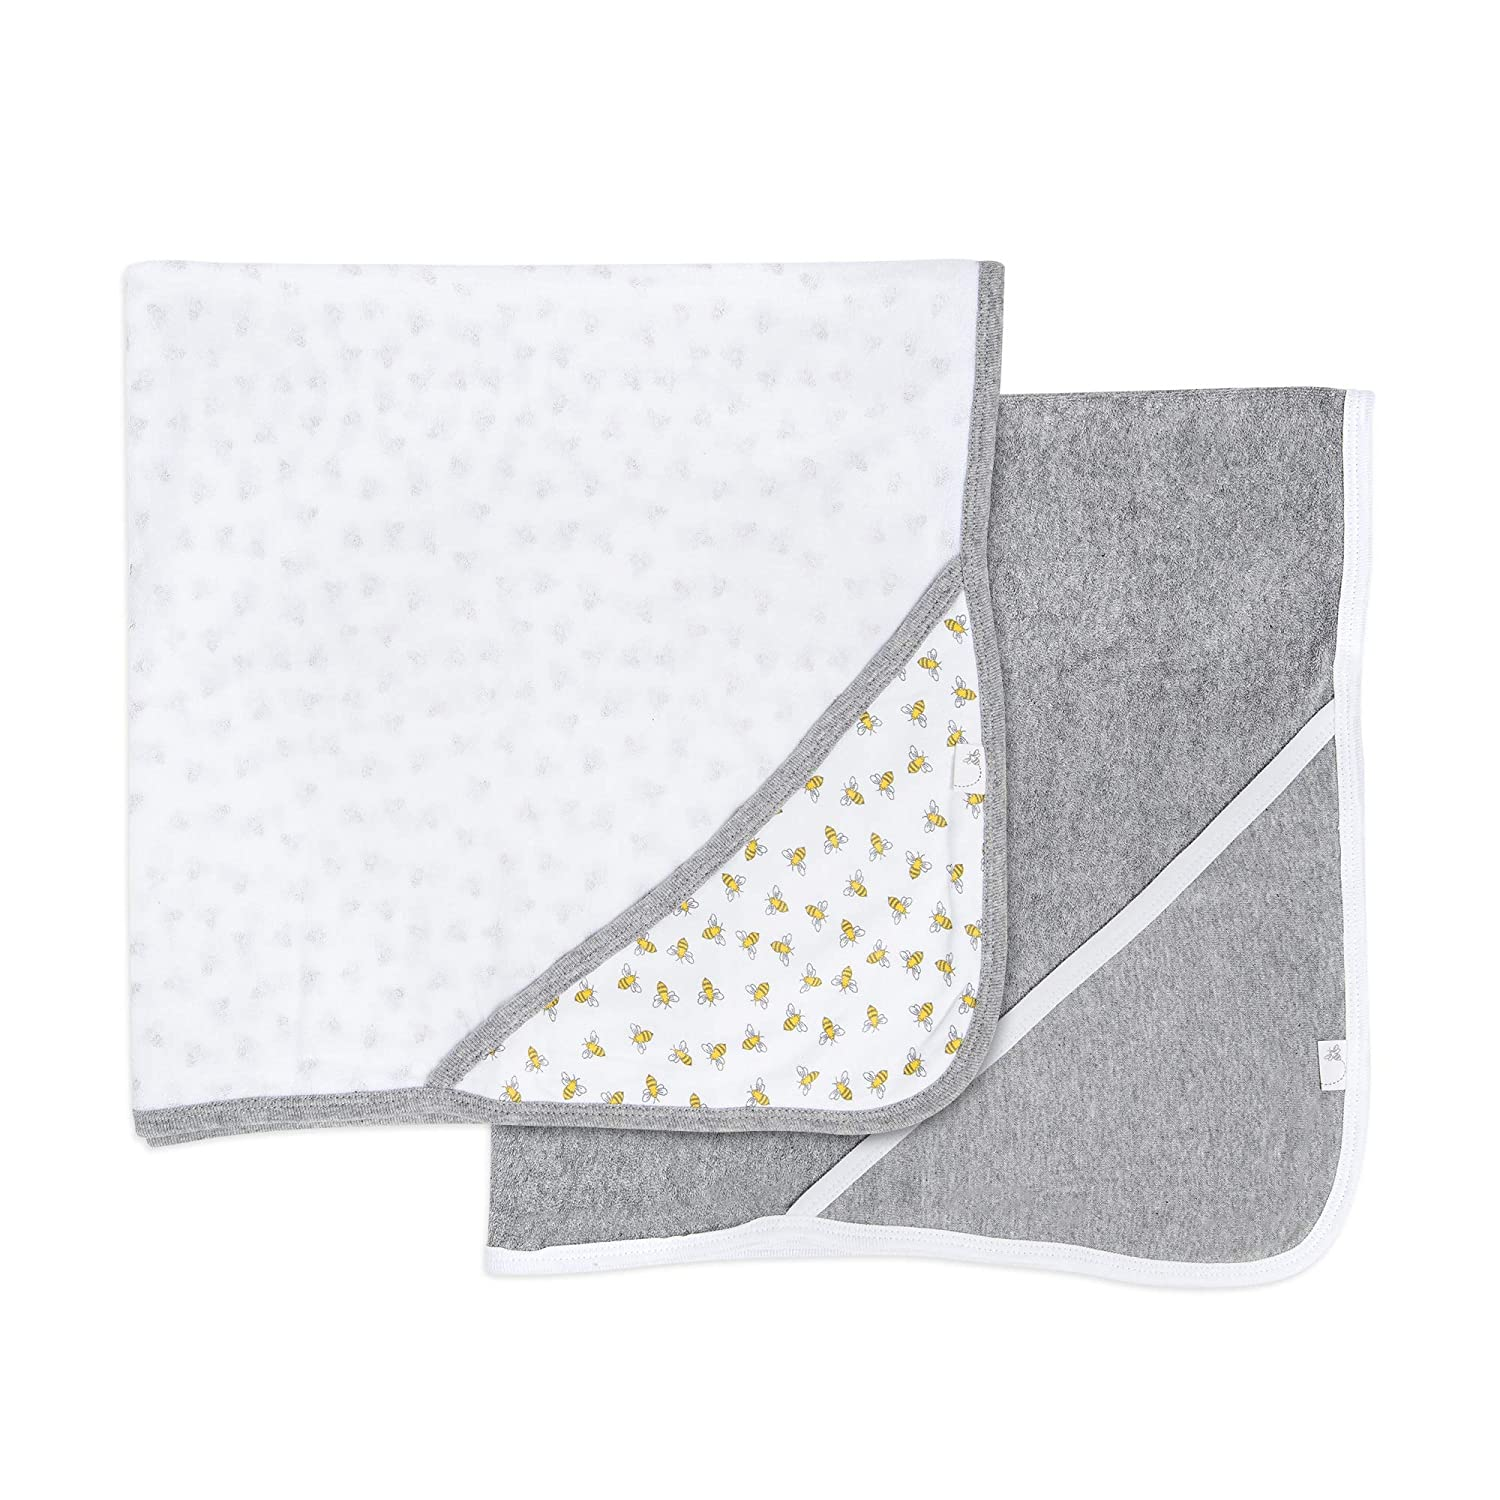 Burt's Bees Baby® 2-Pack Hooded Towels Honey Bee Grey